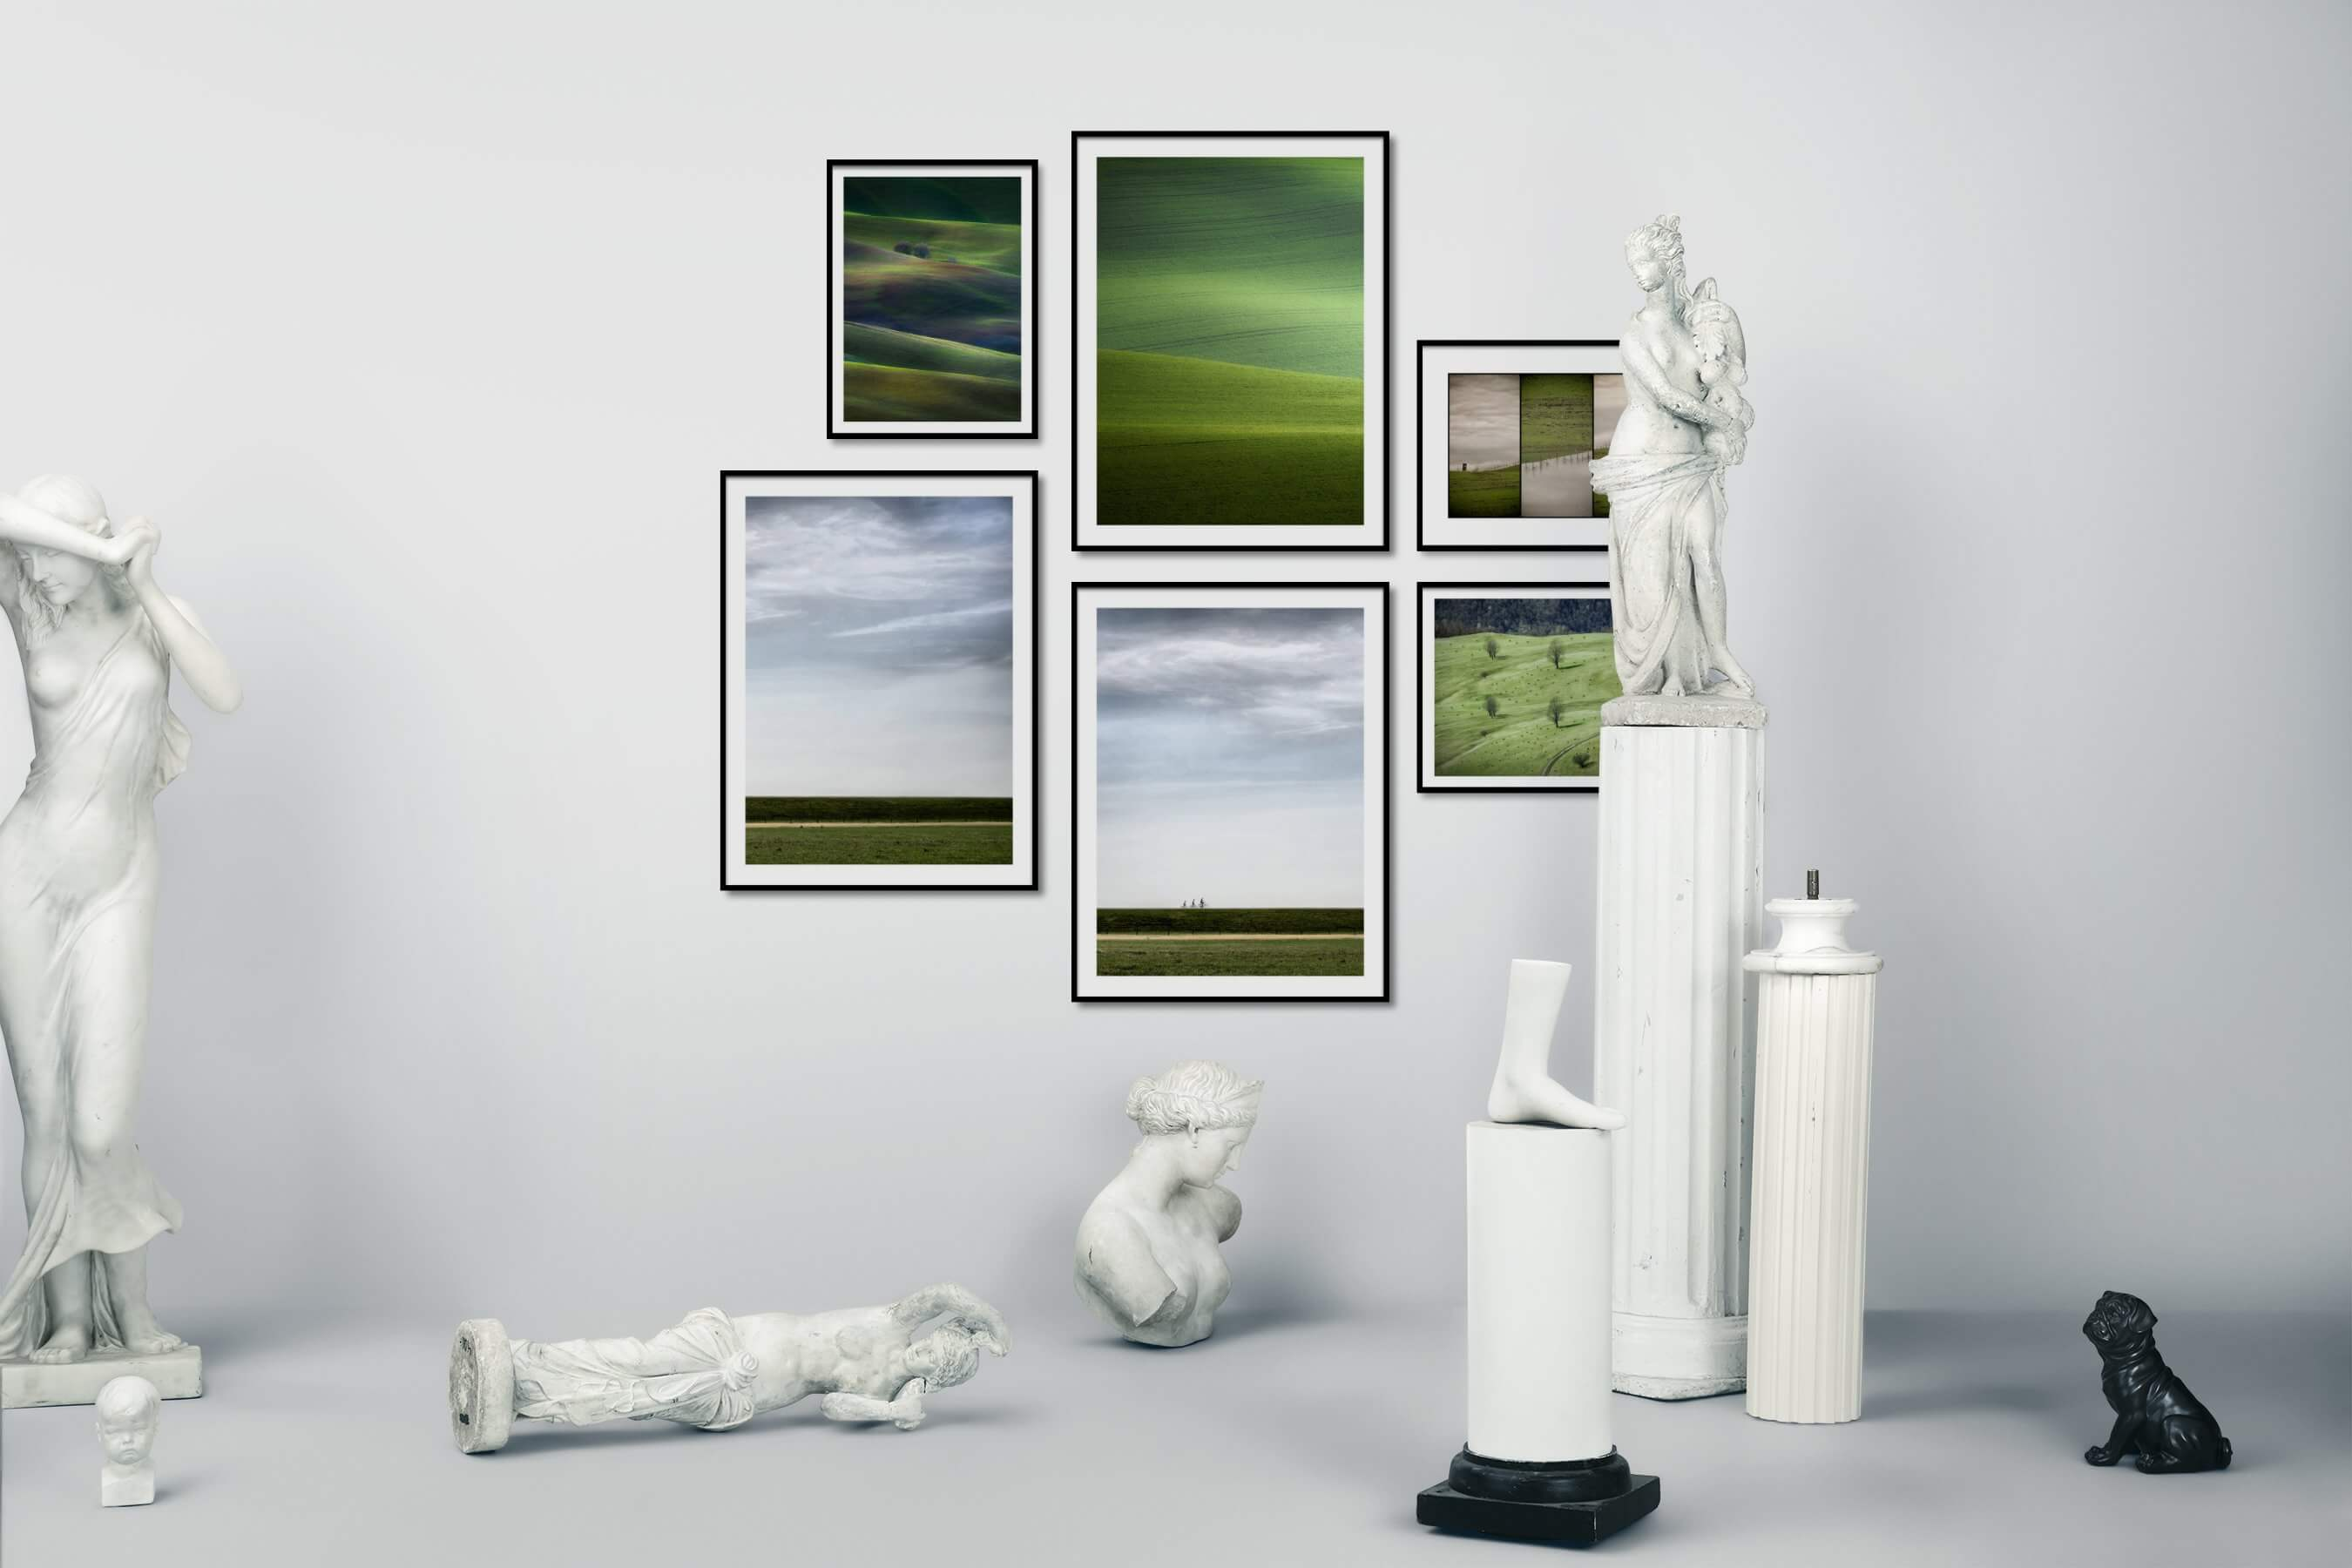 Gallery wall idea with six framed pictures arranged on a wall depicting For the Moderate, Country Life, and For the Minimalist